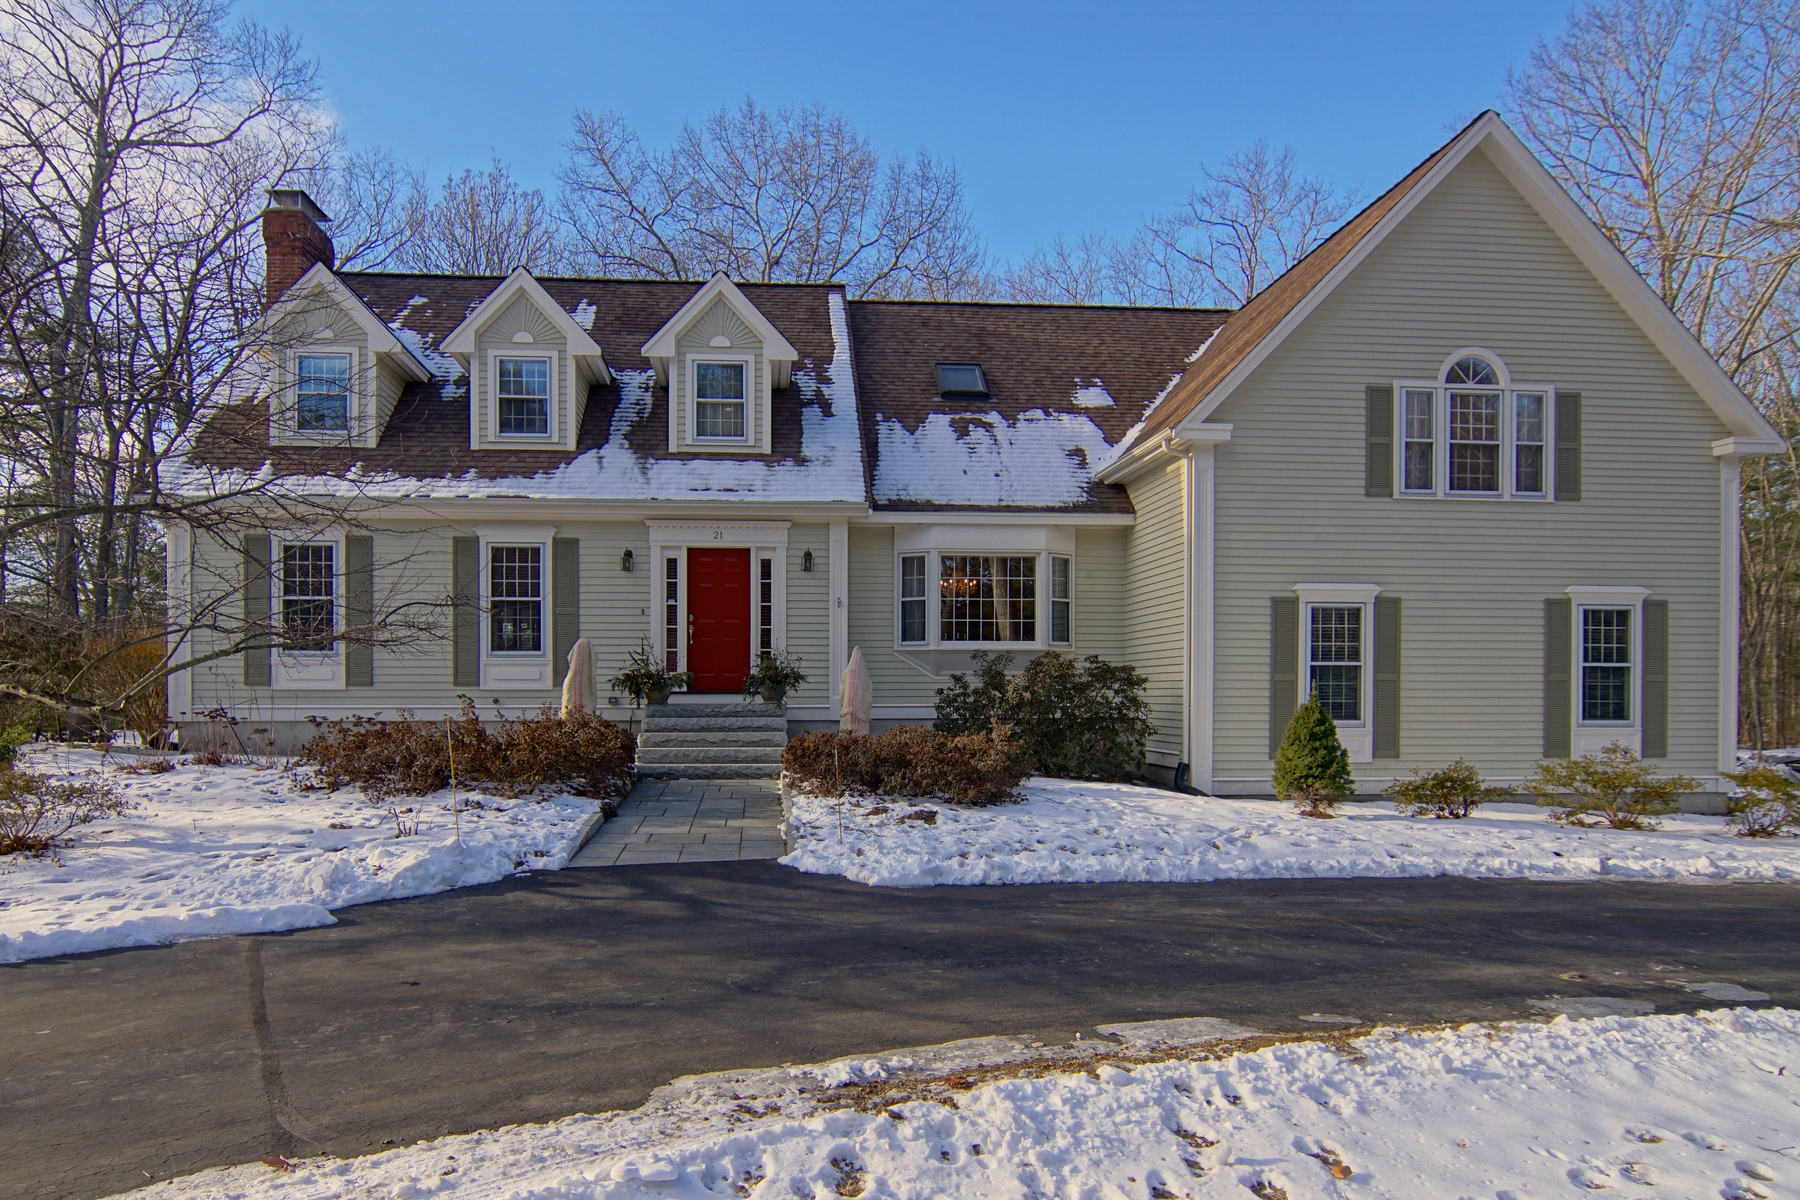 Single Family Home for Sale at Private Setting Close to Beaches and Walking Trails 21 Rockrimmon Road North Hampton, New Hampshire 03862 United States